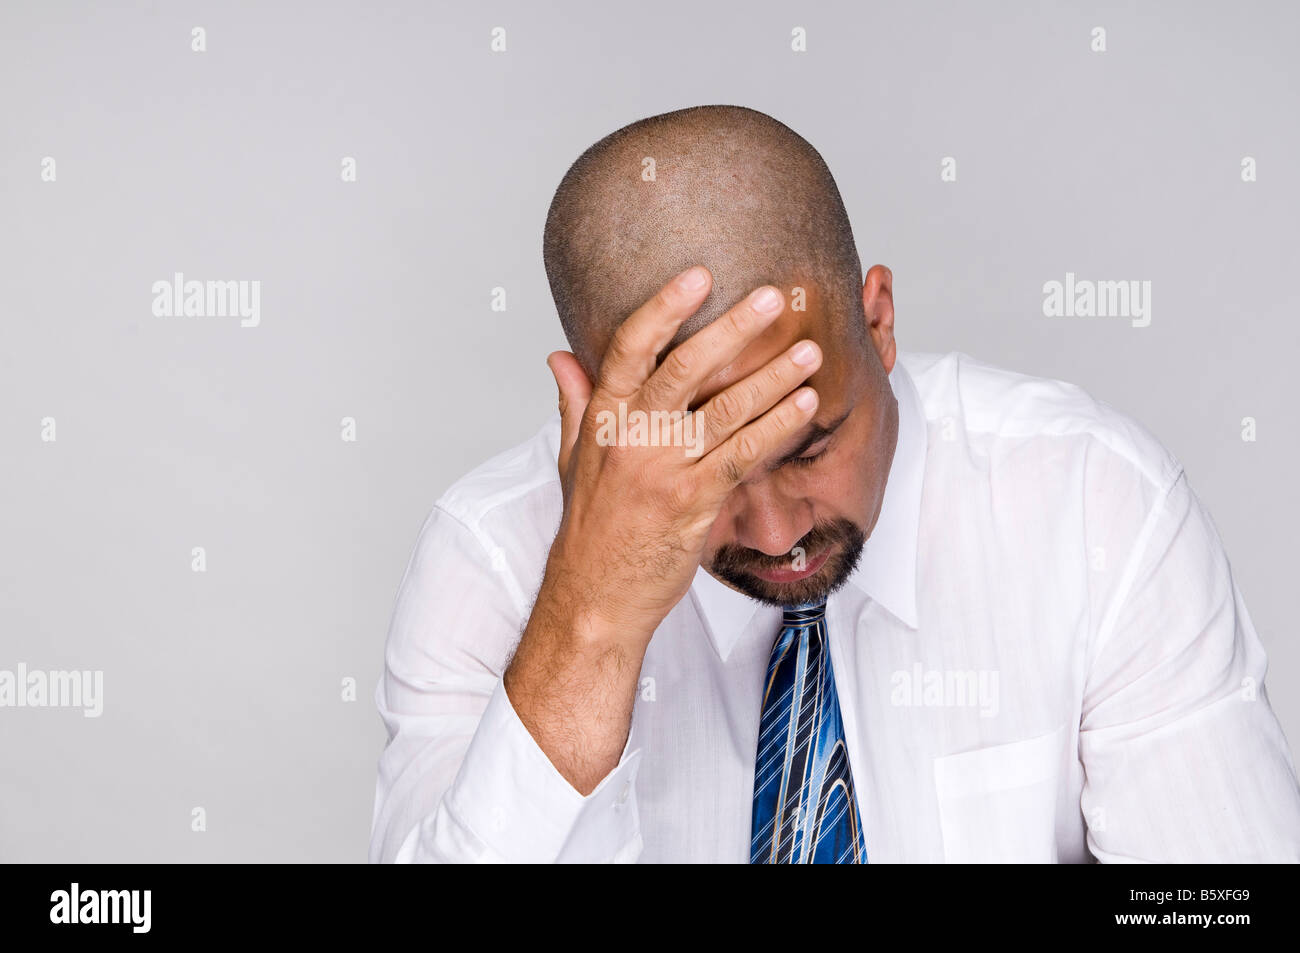 Depressed out of work business man holding head in despair. - Stock Image